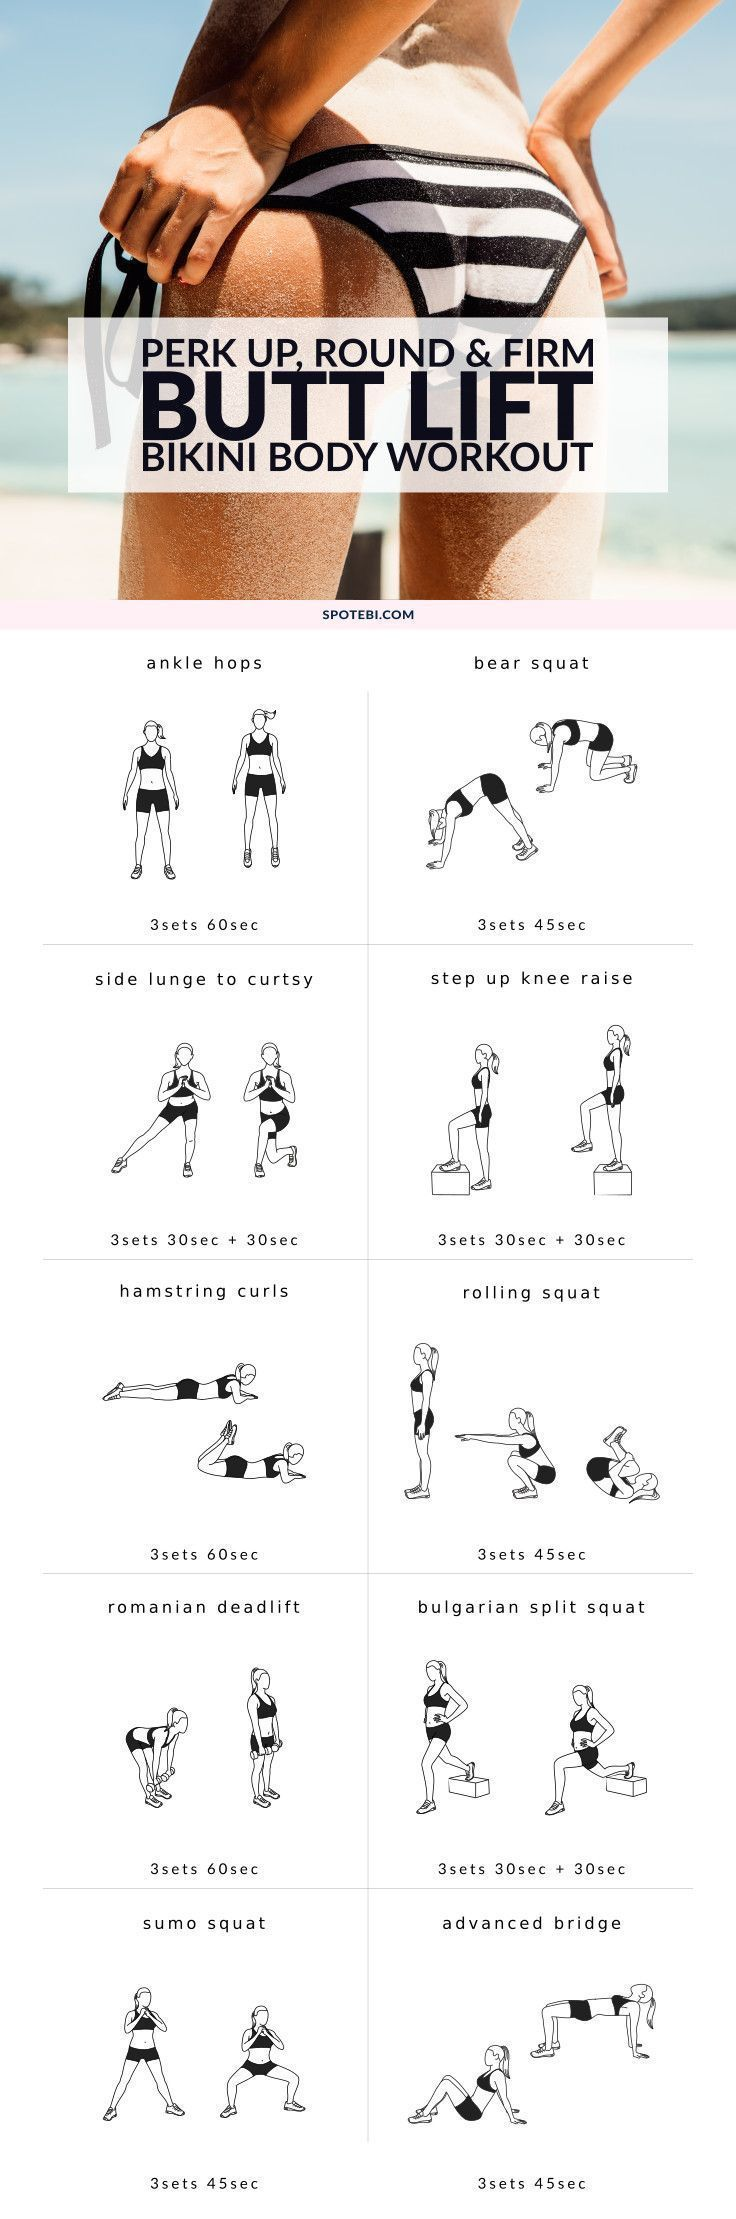 Perk up, round and firm your glutes with this butt lift workout for women. A 30 minute routine designed to target and activate your muscles and make your backside look good from every angle! ?utm_content=buffer4eb57&utm_medium=social&utm_source=www.pinterest.com&utm_campaign… http://www.spotebi.com/workout-routines/butt-lift-bikini-body-workout/?utm_content=buffer823e2&utm_medium=social&utm_source=www.pinterest.com&utm_campaign=buffer